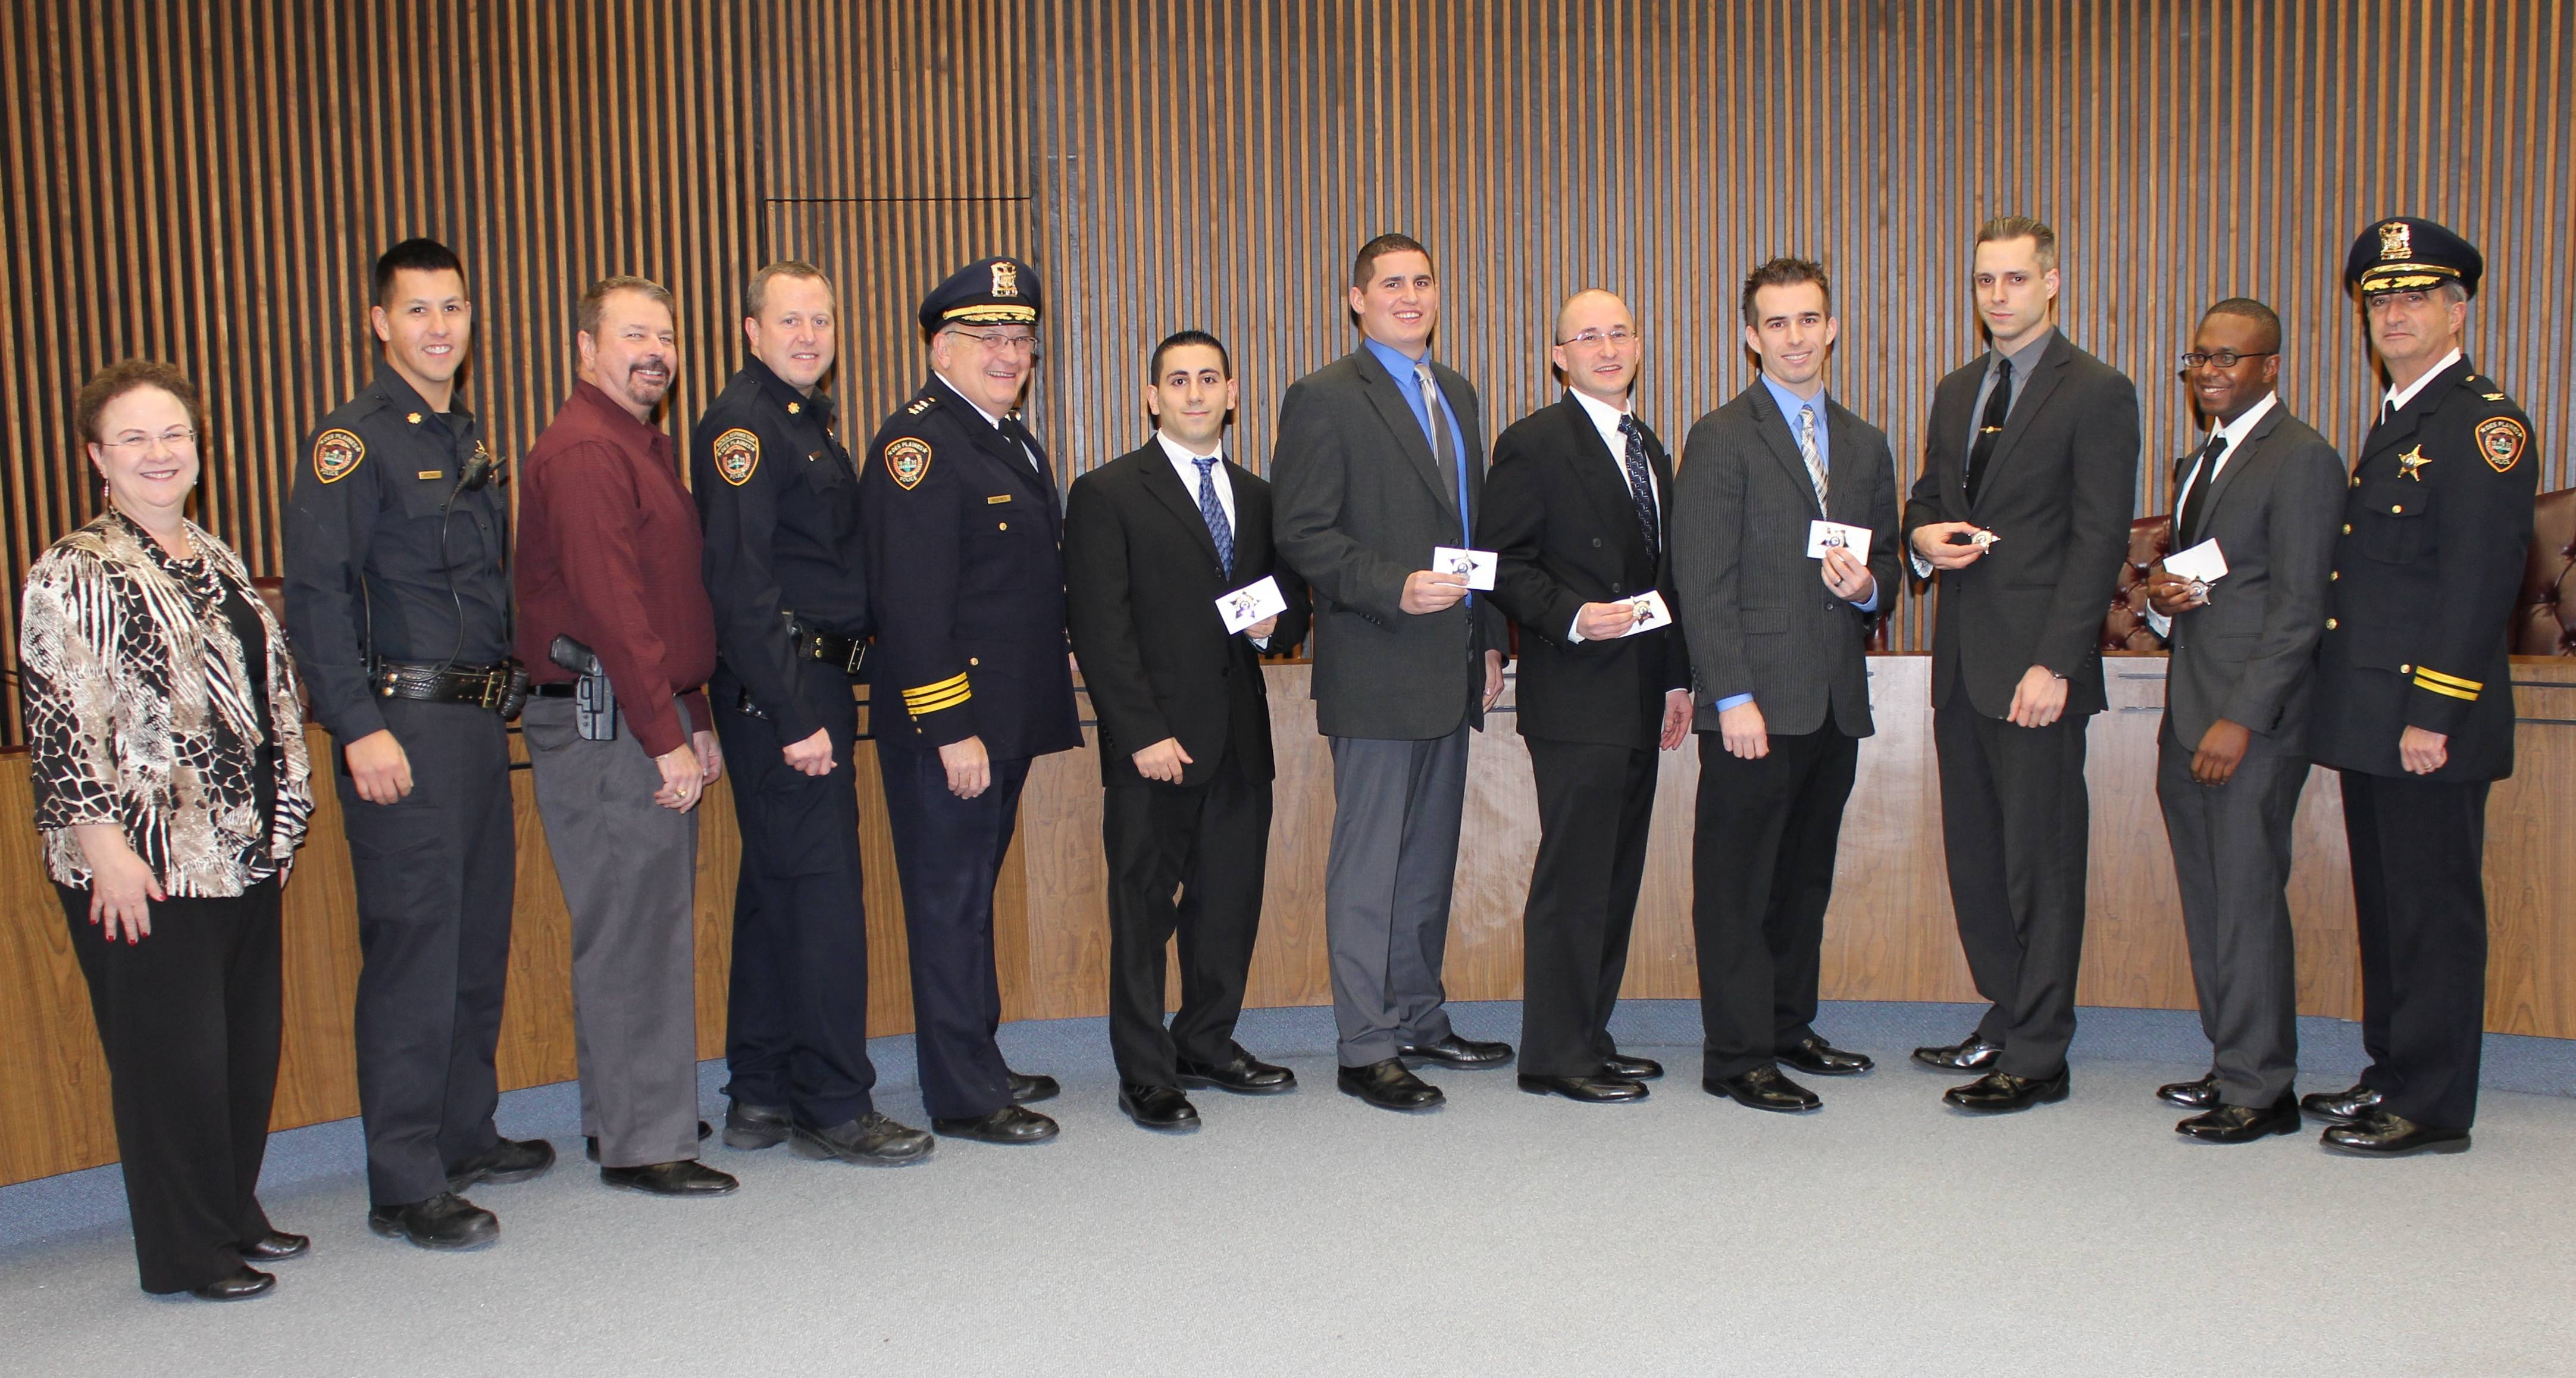 (pictured left to right) City Clerk Gloria Ludwig, Des Plaines Police Commander Louis Wittmer, Commander Randy Akin, Commander Paul Burger, Police Chief Bill Kushner, Police Patrol Officer Jack Azar, Police Patrol Officer Thomas Doig, Police Patrol Officer Carl Faust, Police Patrol Officer Jimmy Armstrong, Police Patrol Officer Curtis Miller, Police Patrol Officer William Cozzens, and Deputy Chief Nick Treantafeles pose for a photograph in the City Council Chambers following the swearing in ceremony.